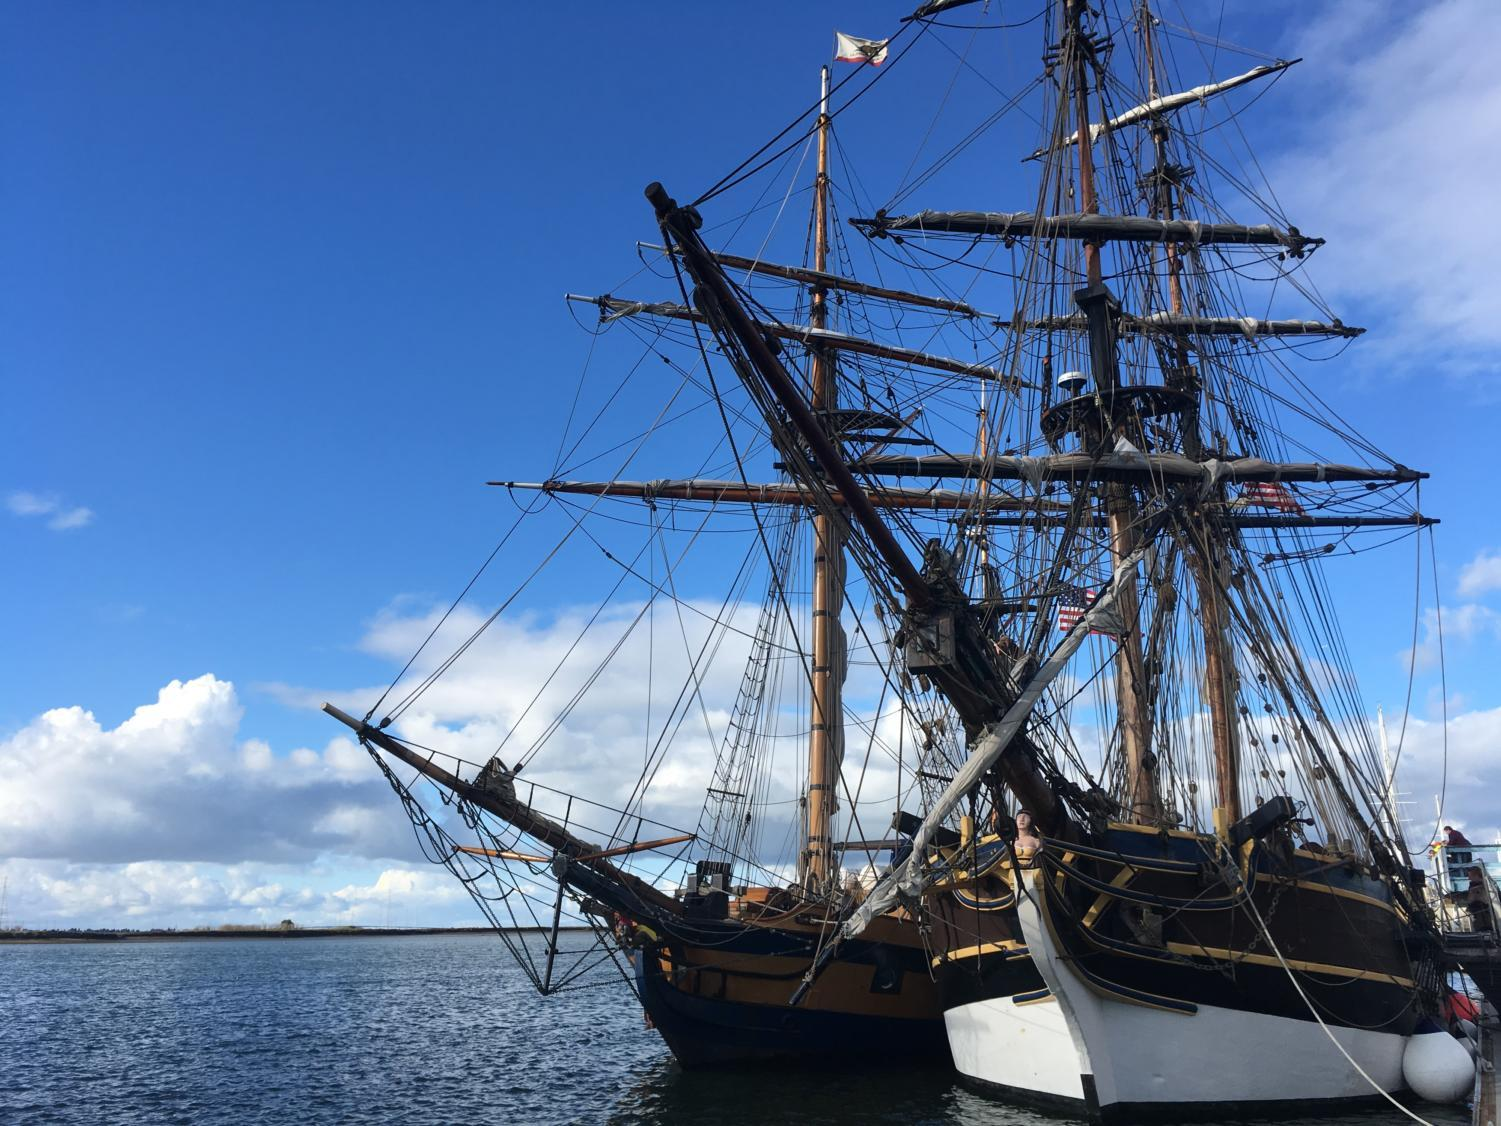 Lady Washington (right) and Hawaiian Chieftain (left) docked in the Port of Redwood City.